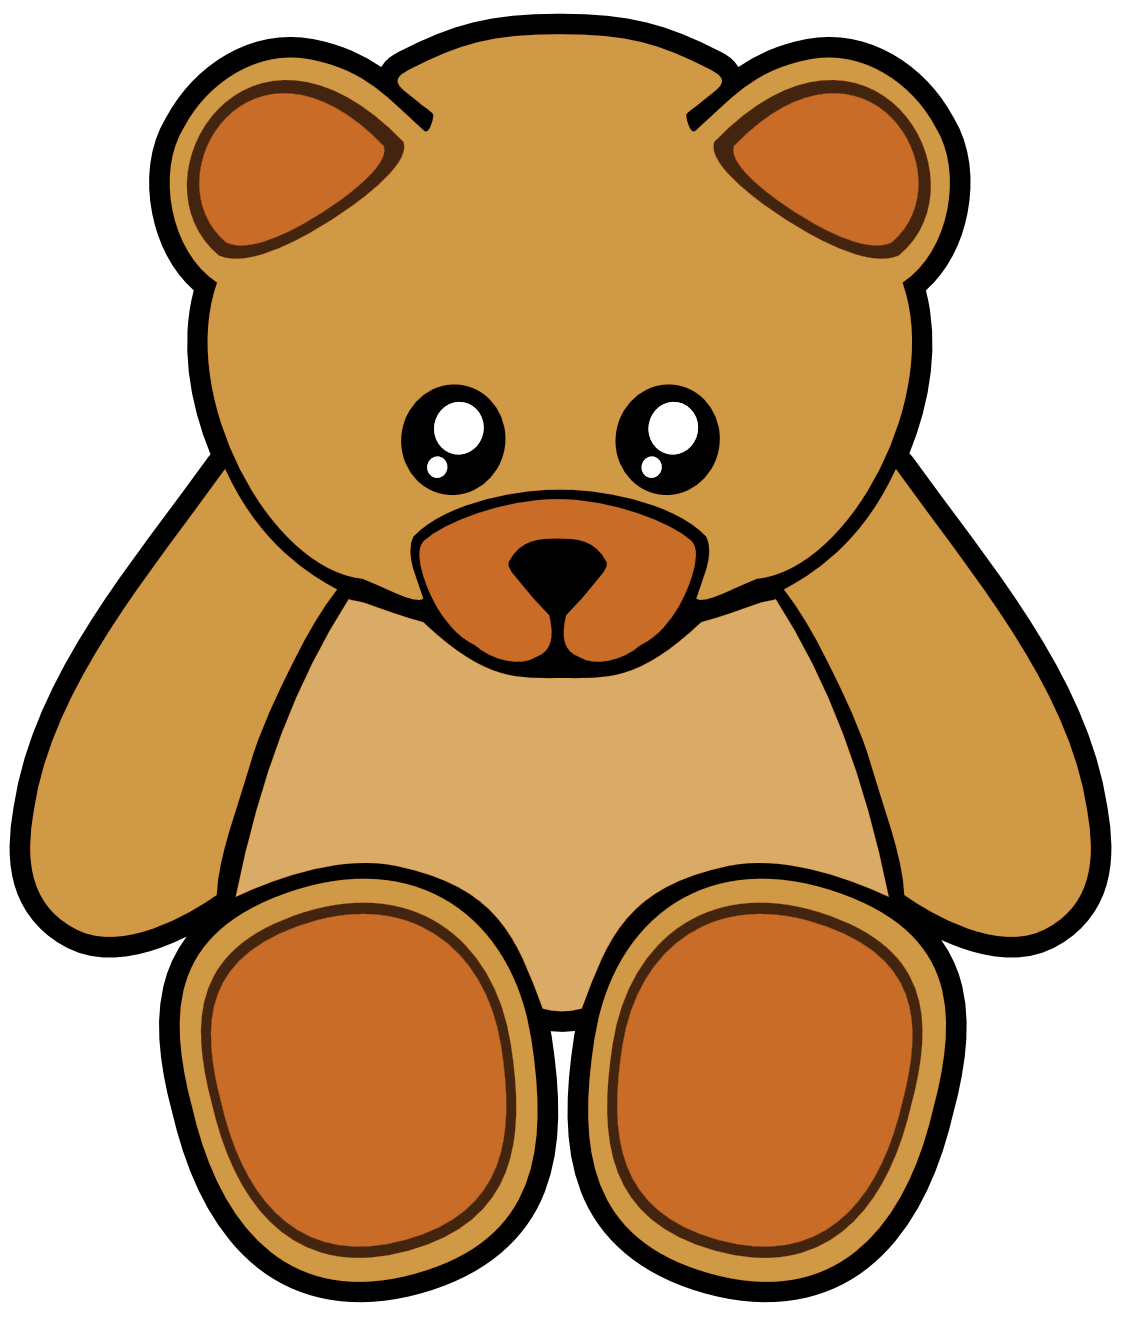 Brown Cute Teddy Bear | Free Images at Clker.com - vector ...